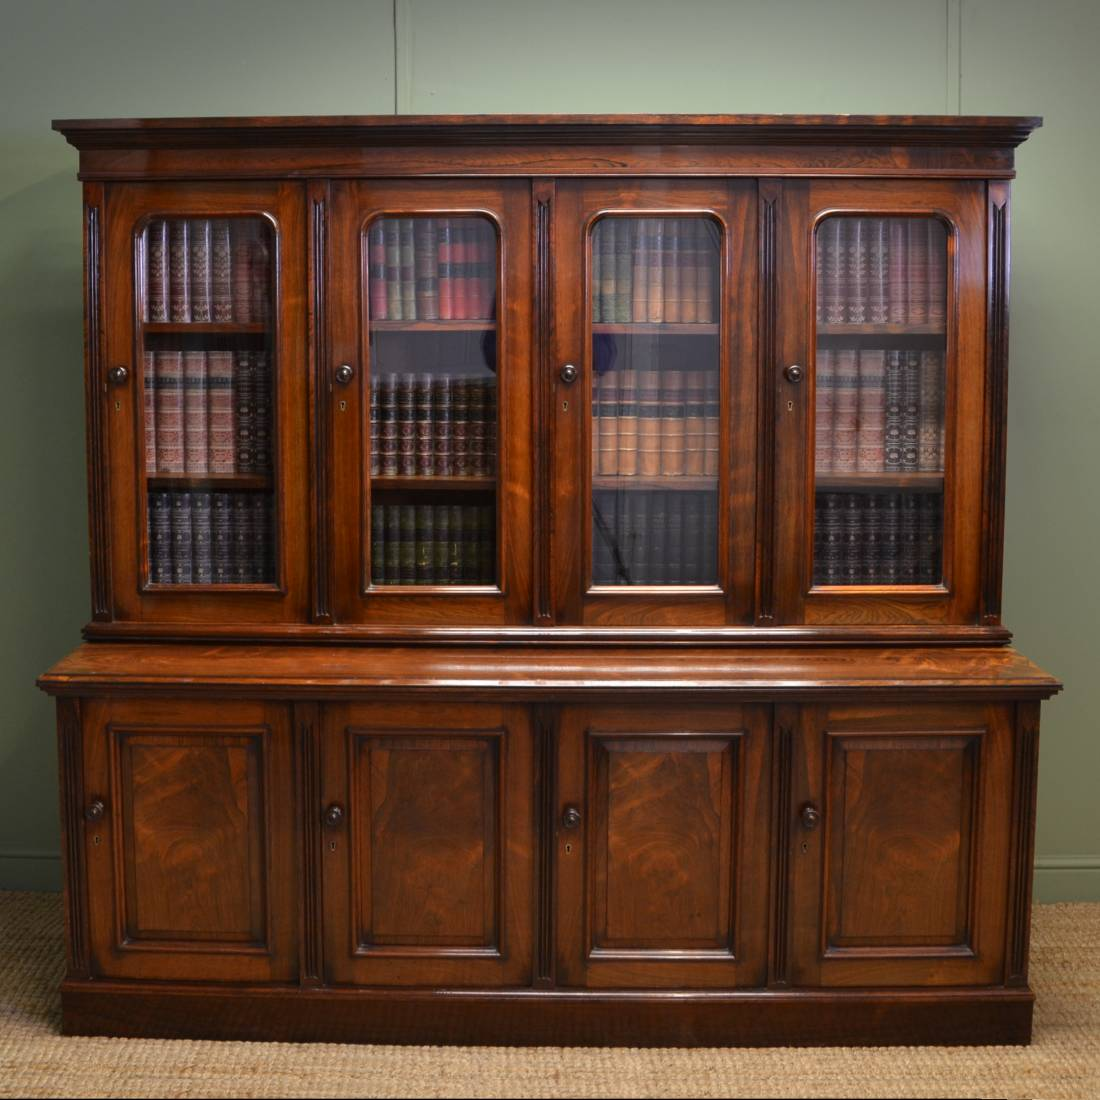 Spectacular Figured Rosewood Victorian Antique Library Bookcase Of Small  Proportions – H Ogden. - Spectacular Figured Rosewood Victorian Antique Library Bookcase Of